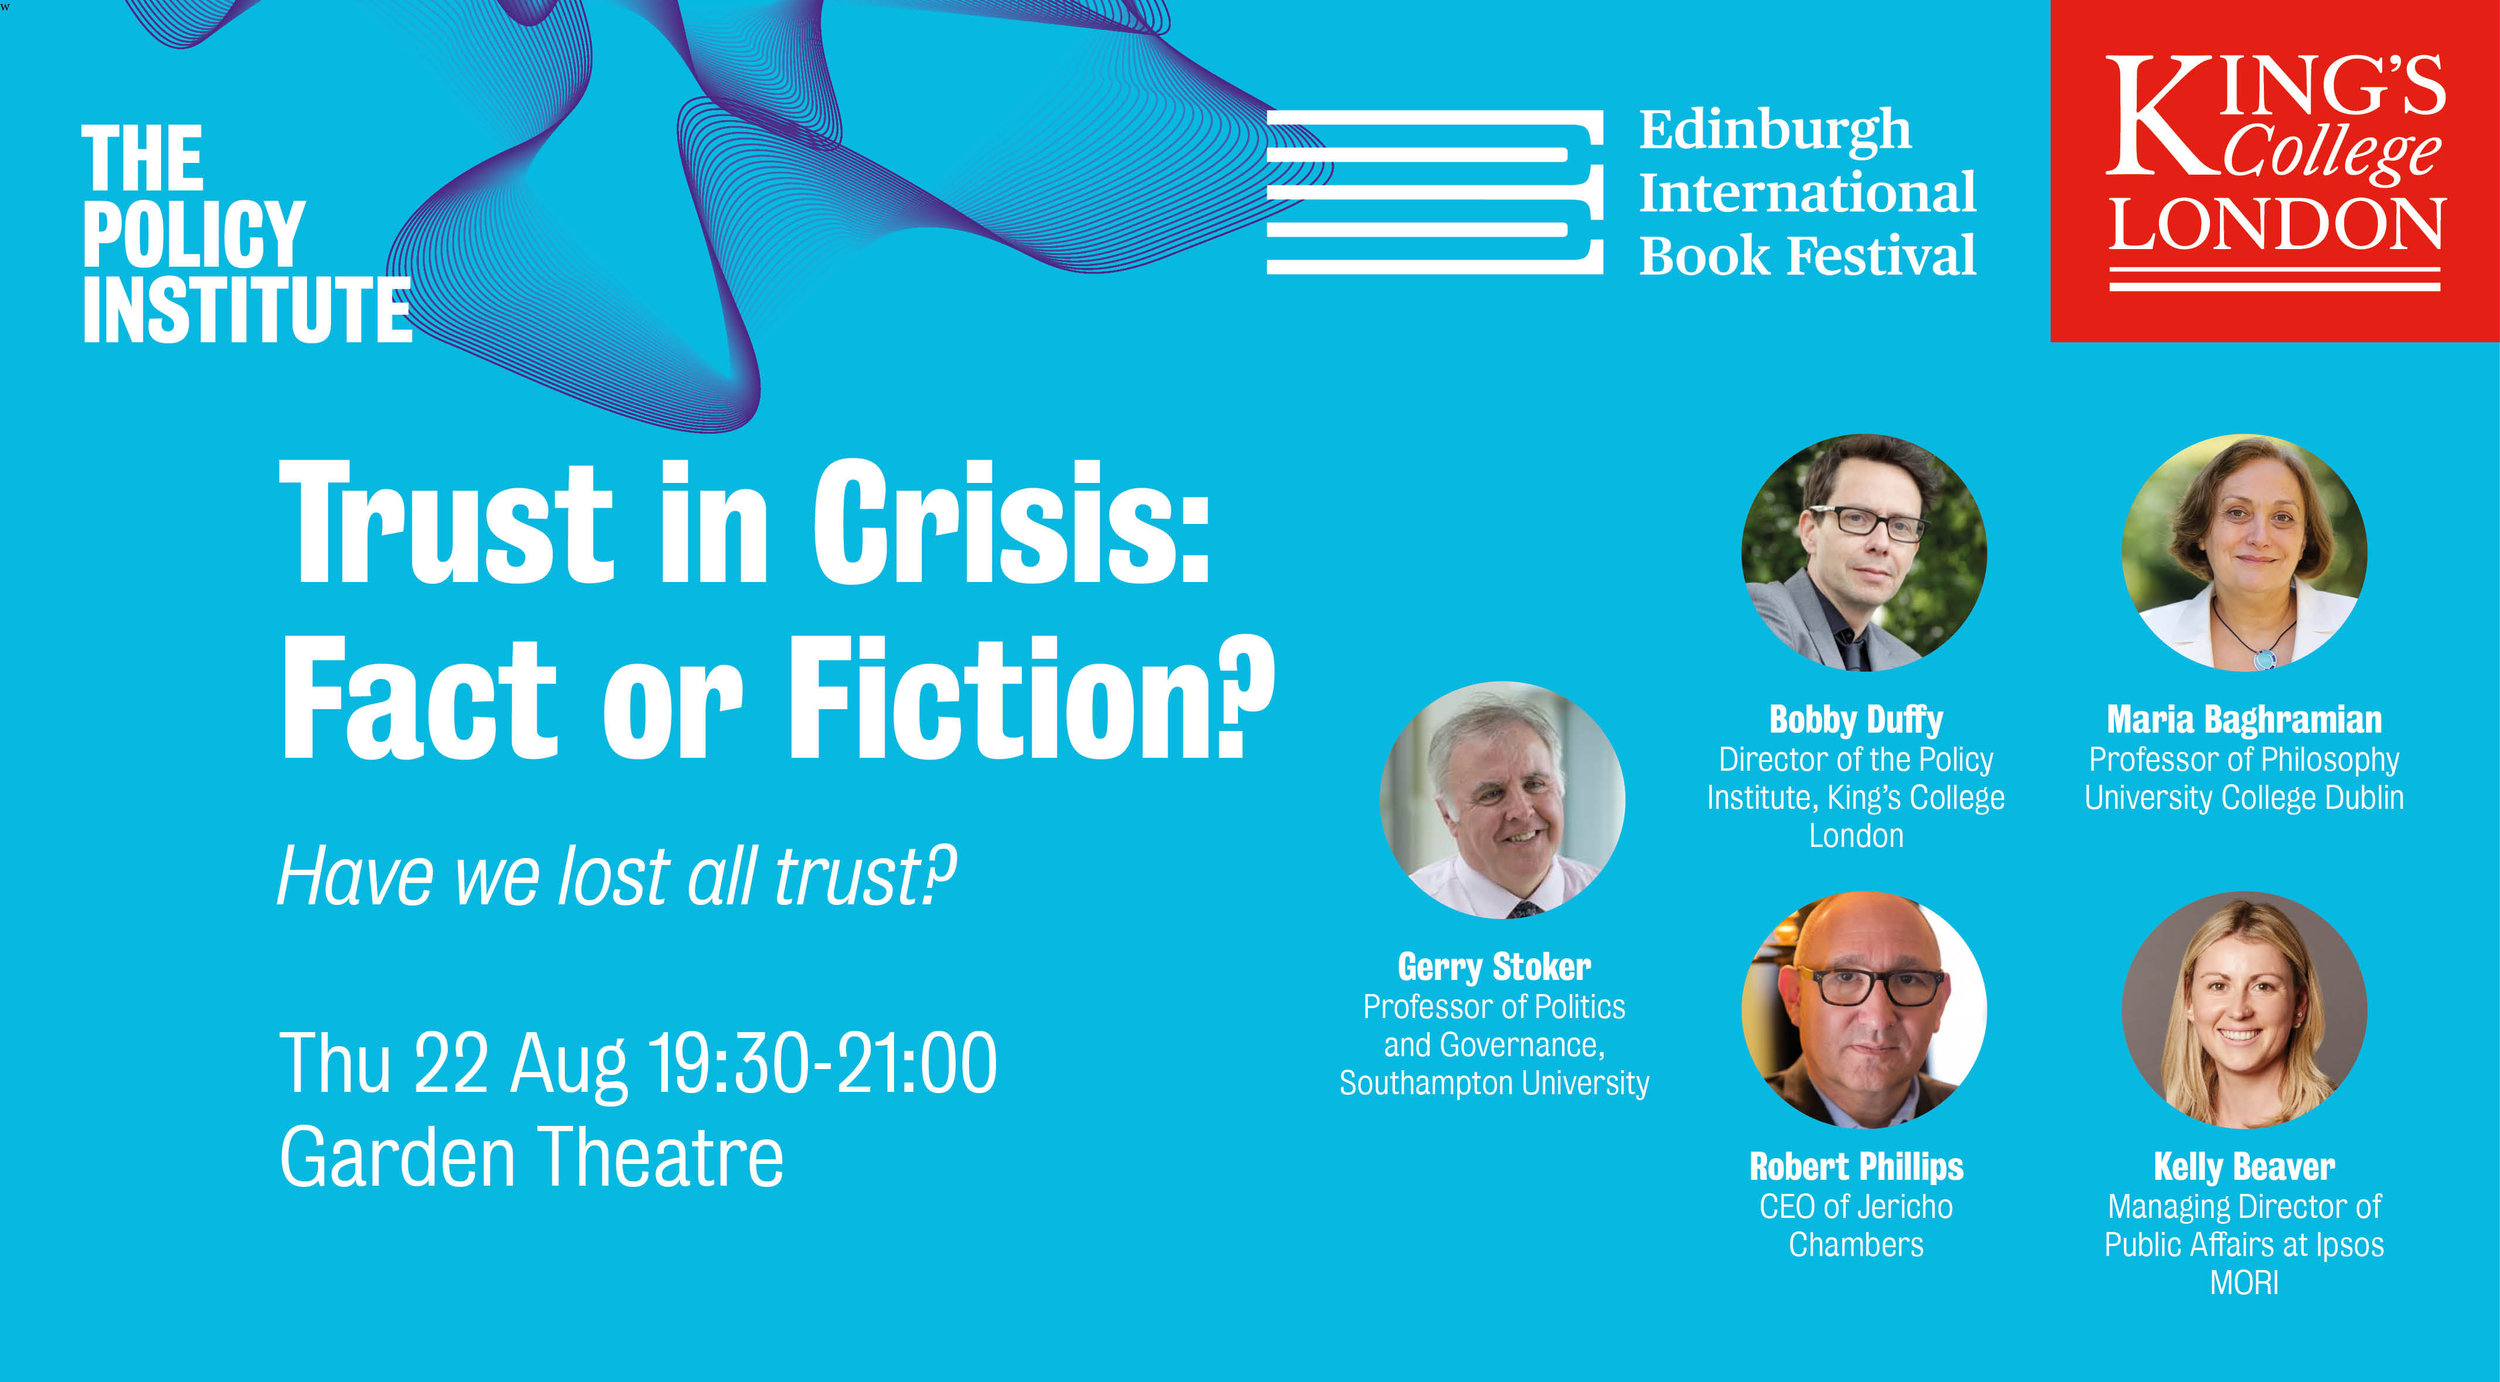 Trust in Crisis event at the Edinburgh International Book Festival in partnership with the Policy Institute and Kings College London